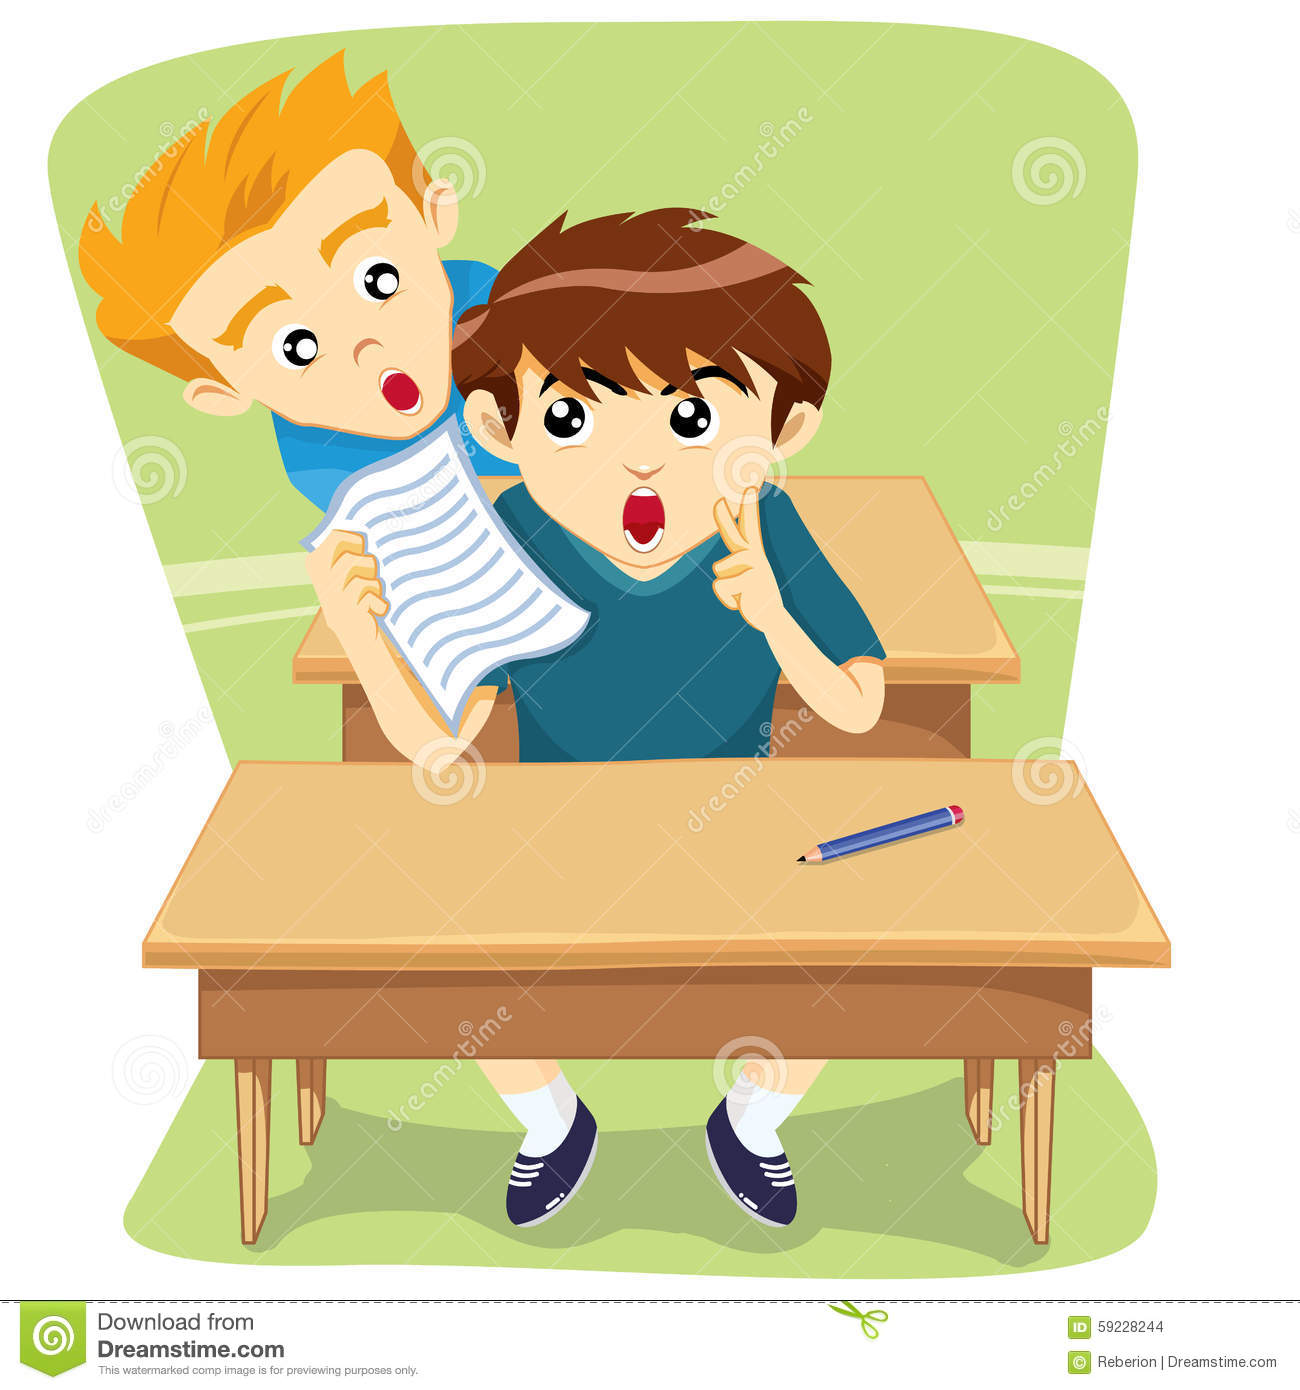 a study of cheating in children at schools New study says allegations of cheating in atlanta public schools last week and charged with orchestrating cheating in their schools no child left behind, and.